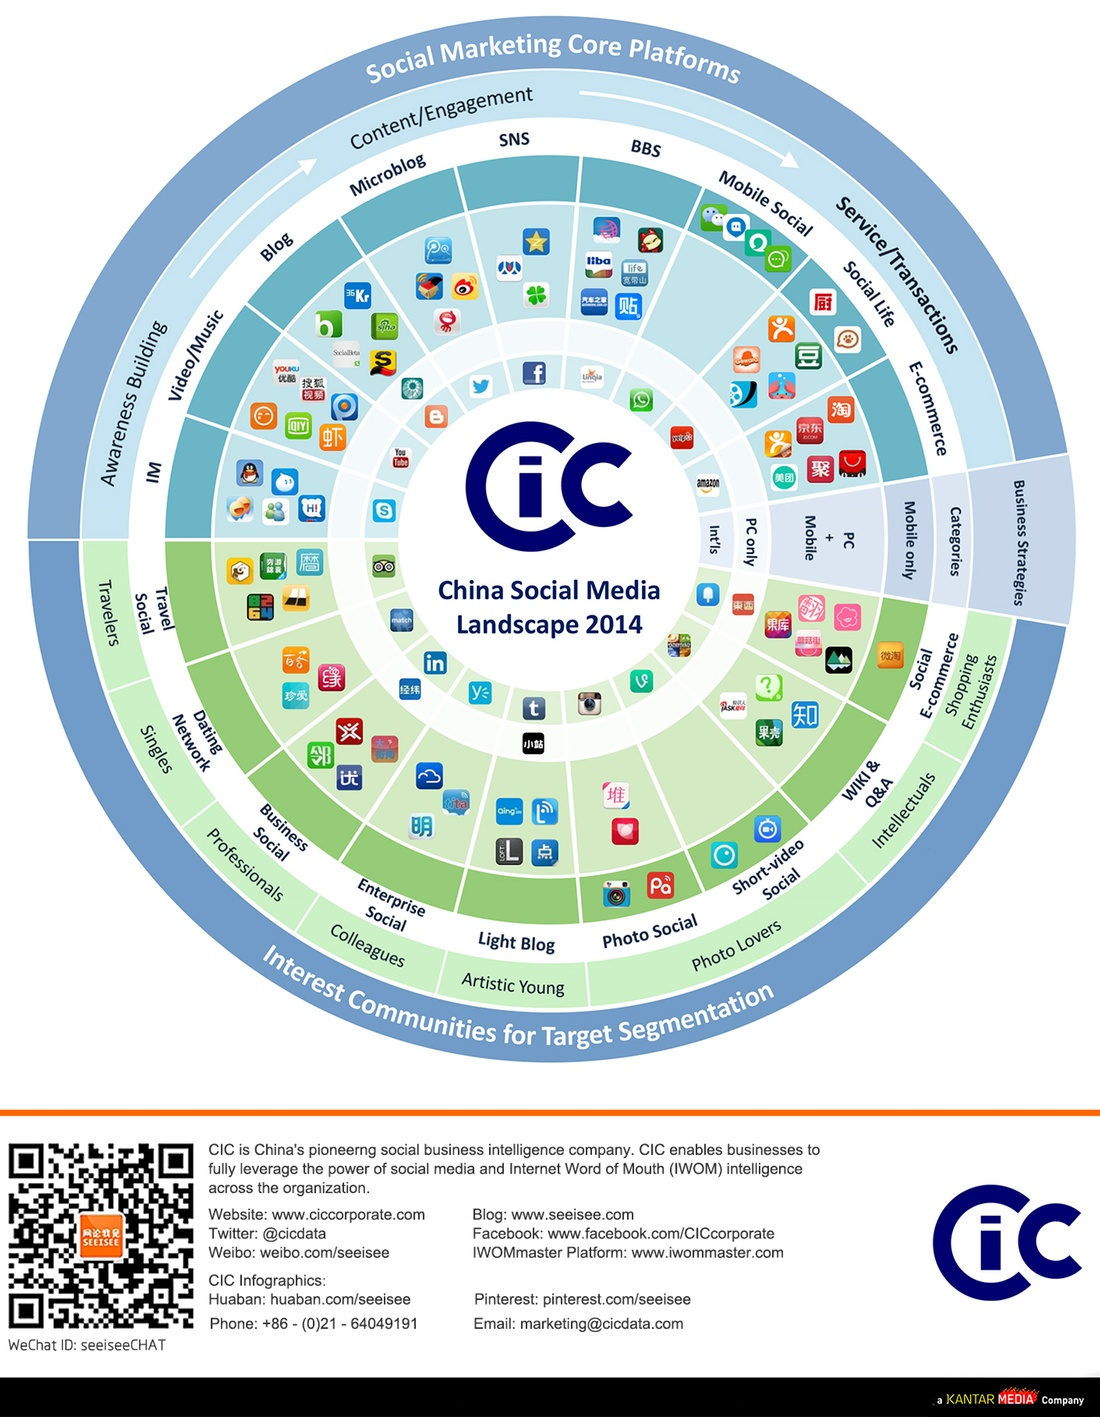 China's social media landscape in 2014 - INFOGRAPHIC